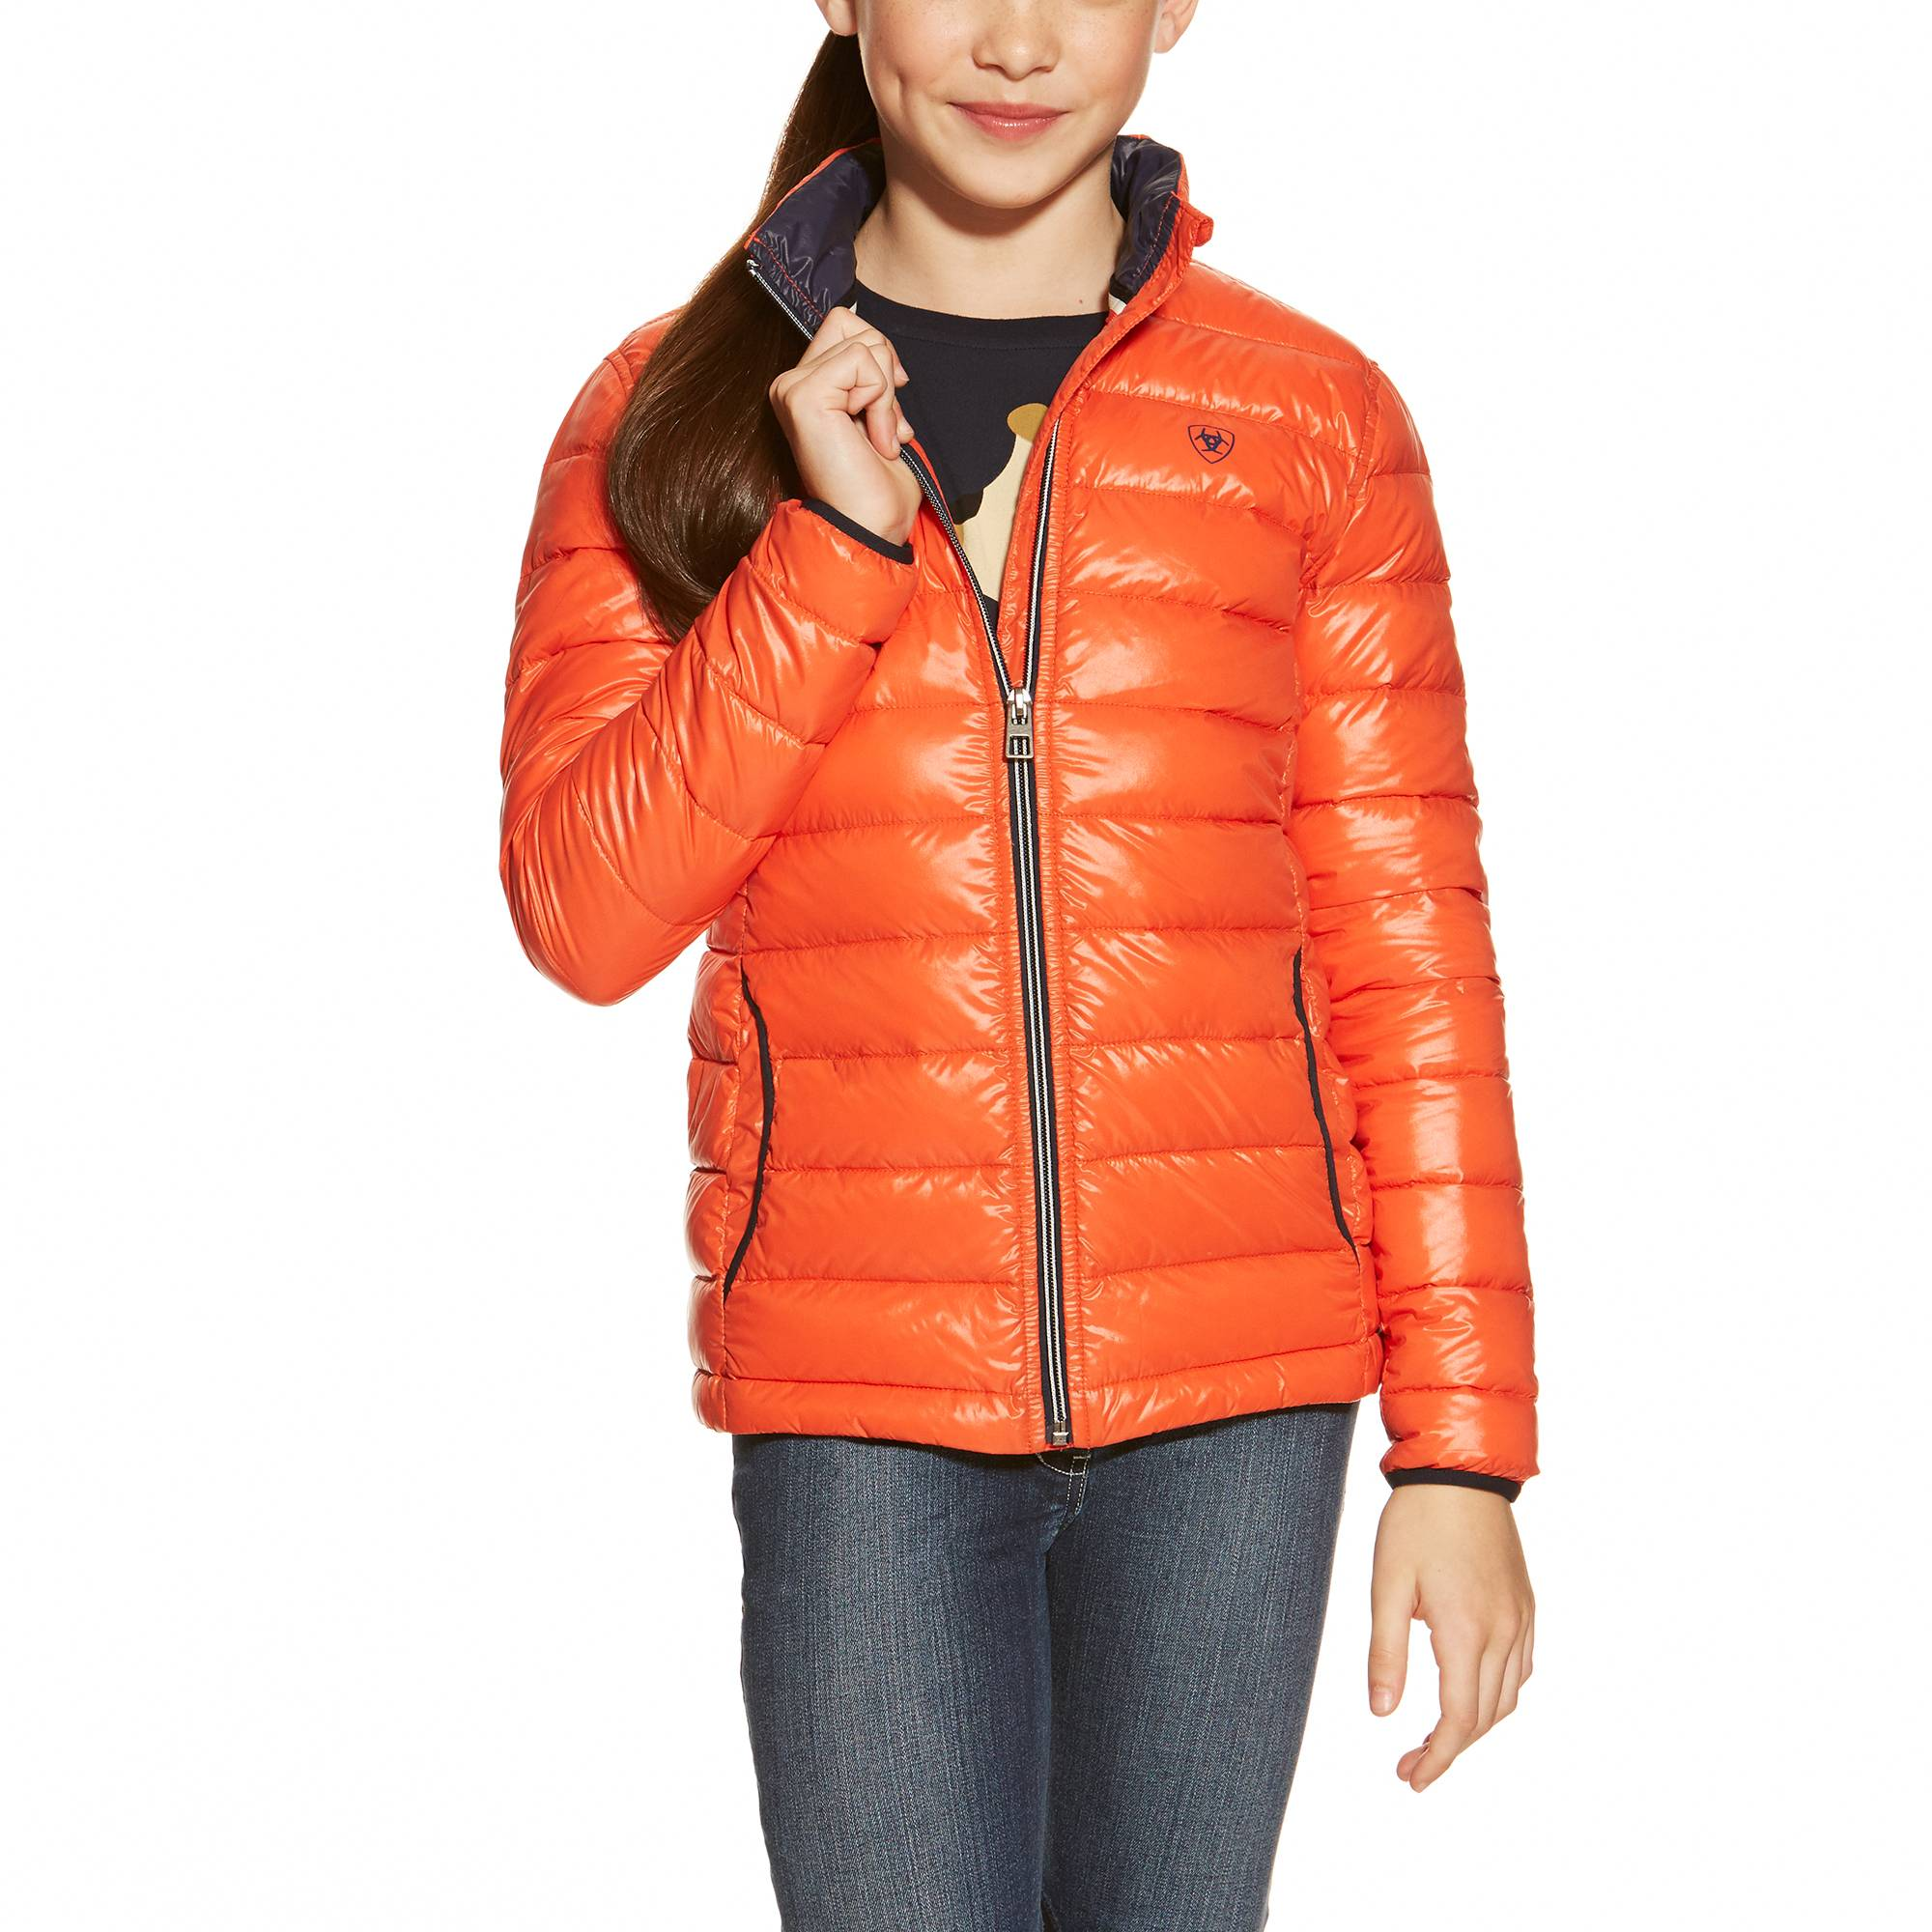 Ariat Girl's Ideal Jacket - Red Coral